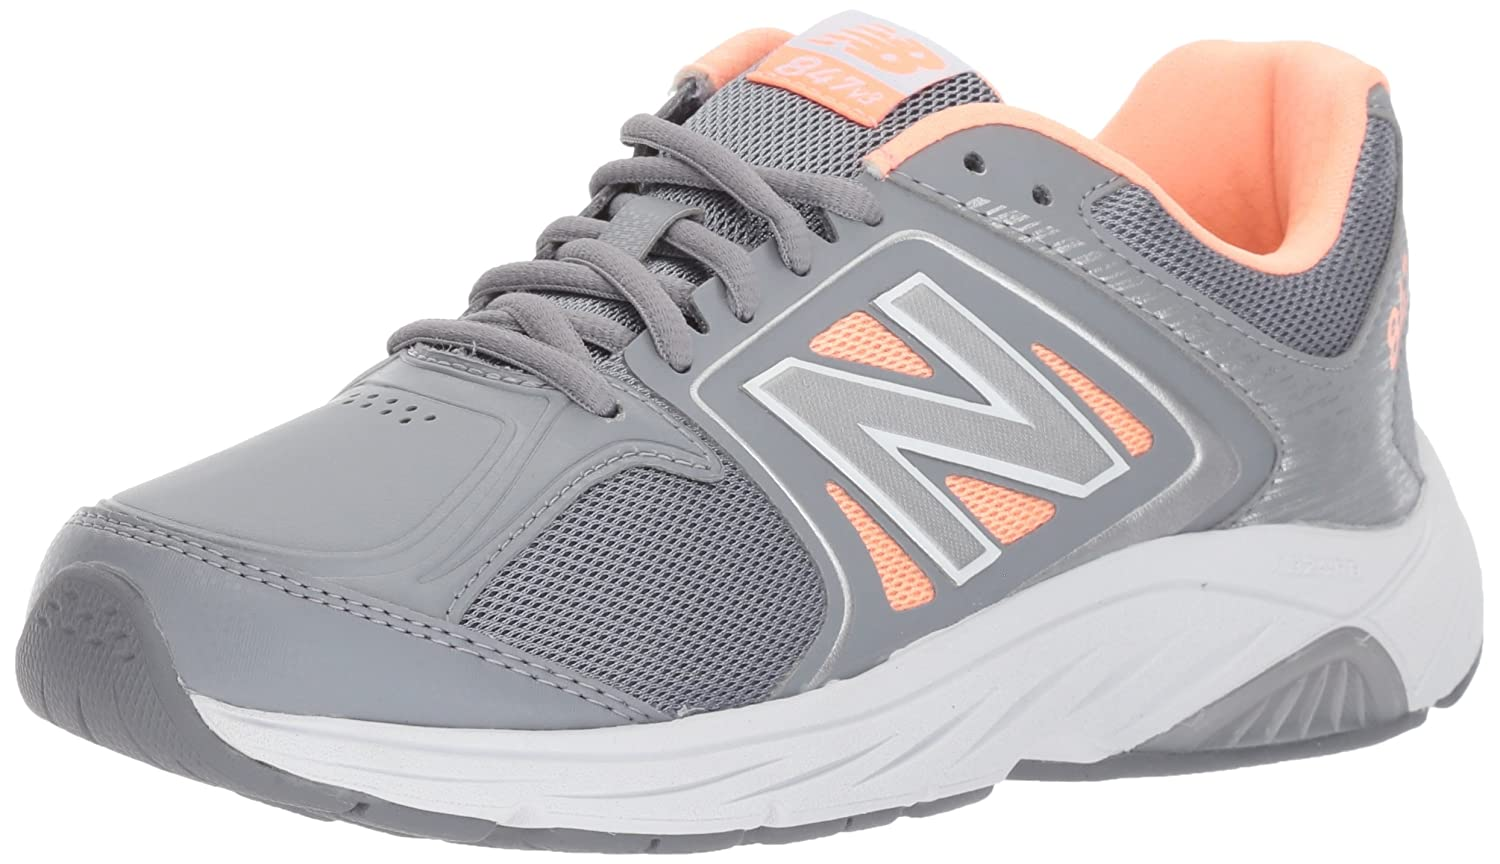 New Balance Women's 847v3 Walking Shoe B01N97AP9M 8.5 B(M) US|Grey/Pink